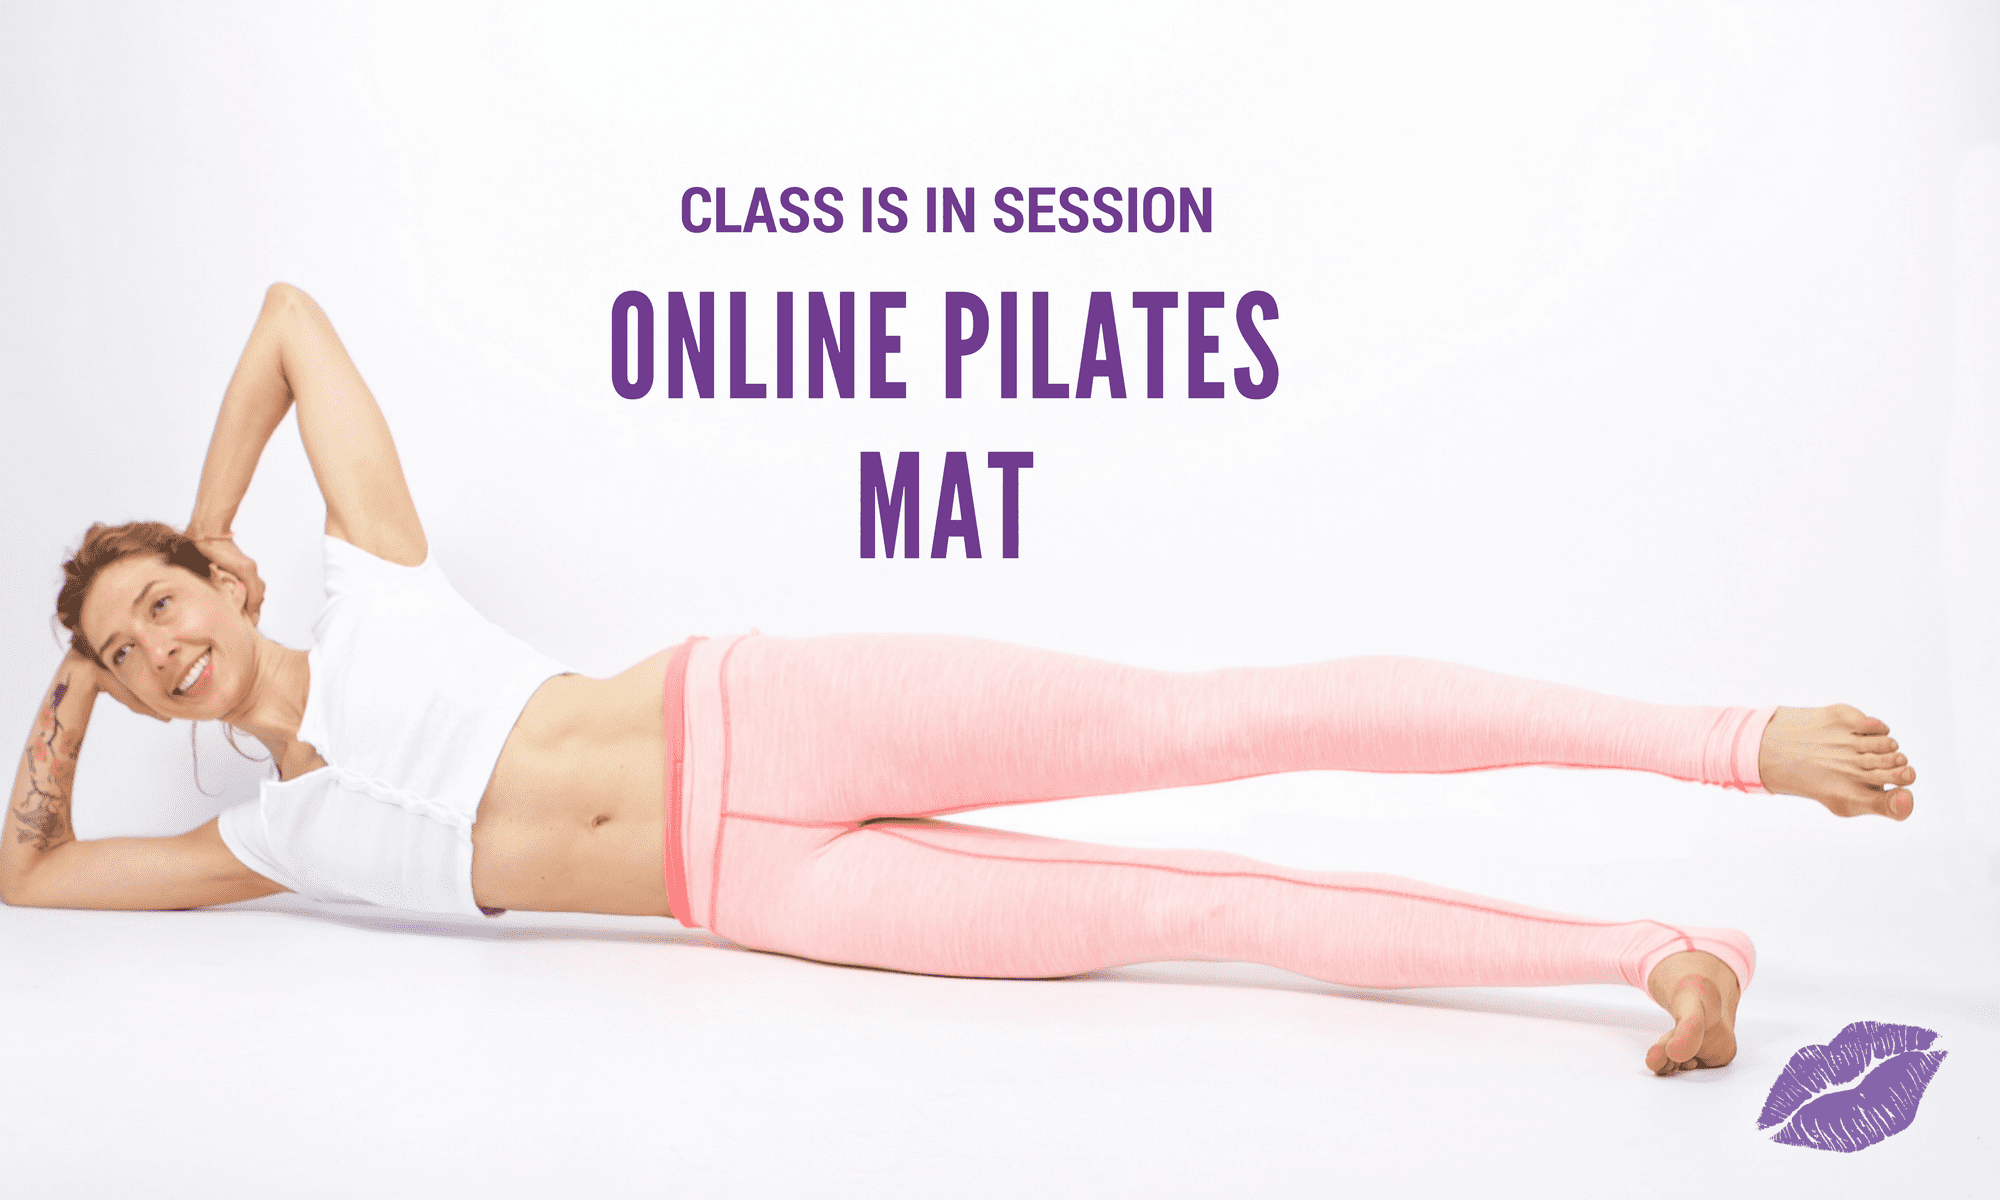 Class is In Session: Pilates with Weights